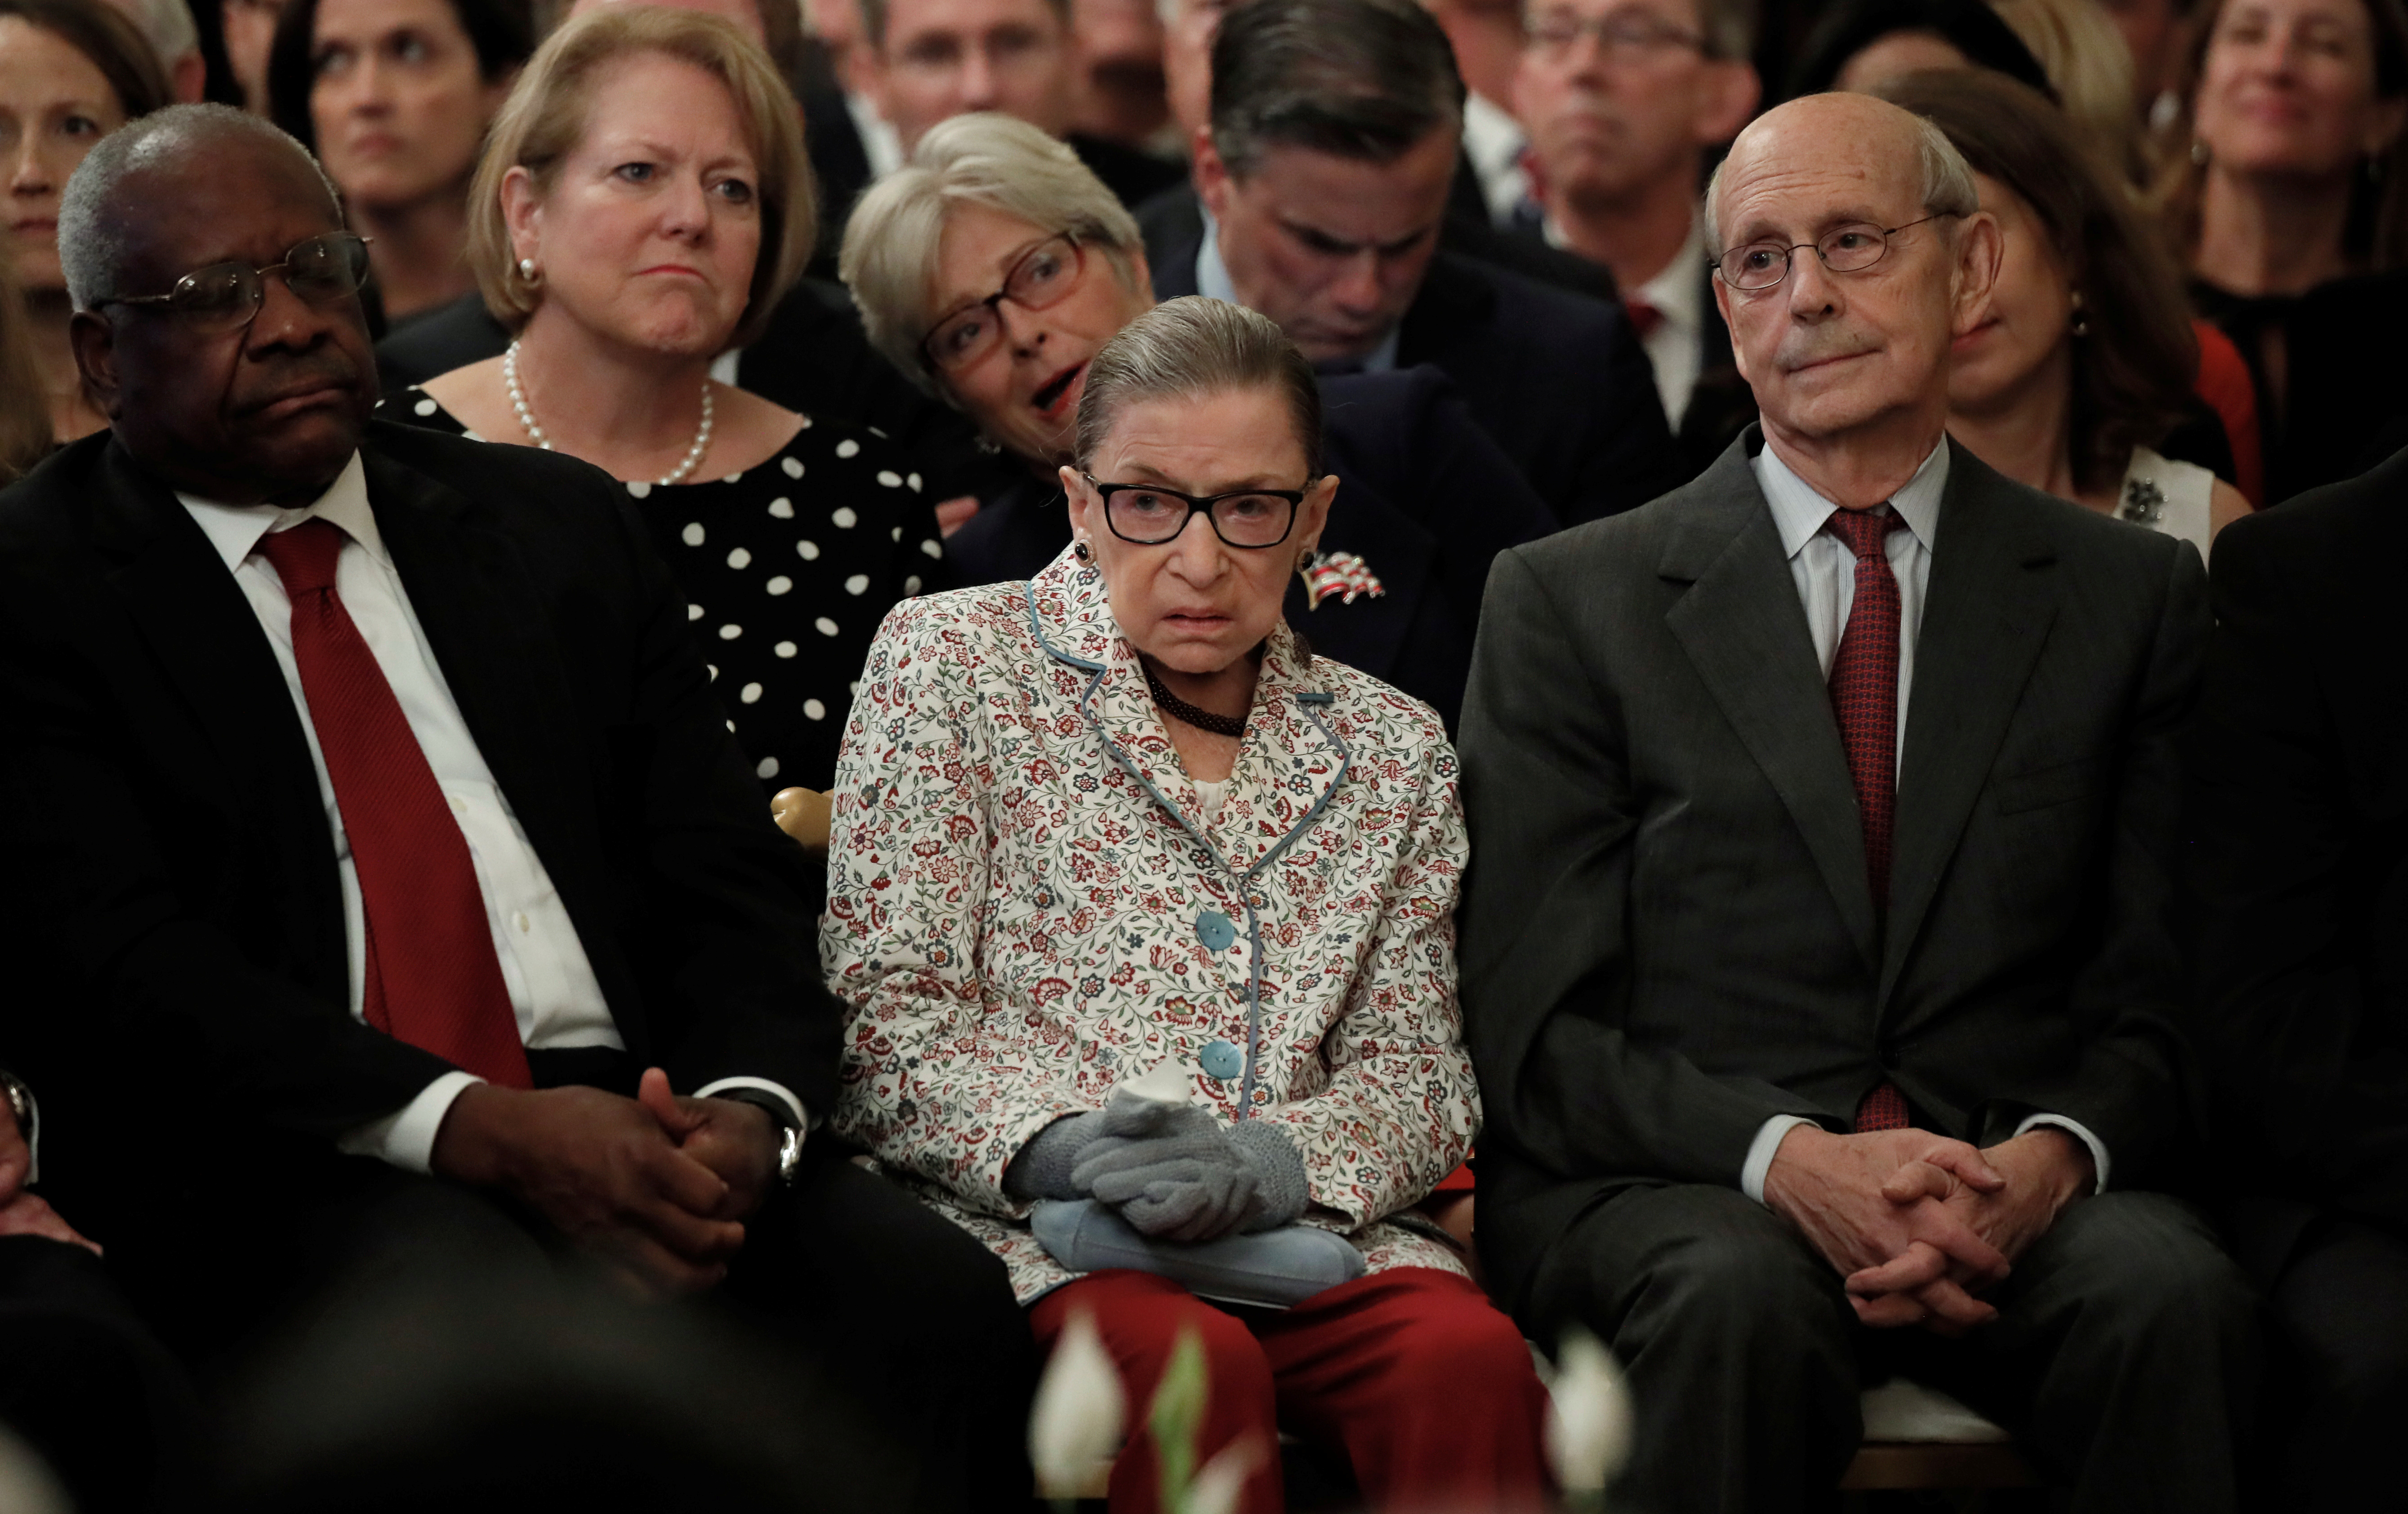 U.S. Supreme Court Associate Justices (L-R) Clarence Thomas, Ruth Bader Ginsburg and Stephen Breyer watch from the front row as Brett Kavanaugh takes his ceremonial oath of office while participating in a ceremonial public swearing-in in the East Room of the White House in Washington, U.S., October 8, 2018. REUTERS/Jim Bourg